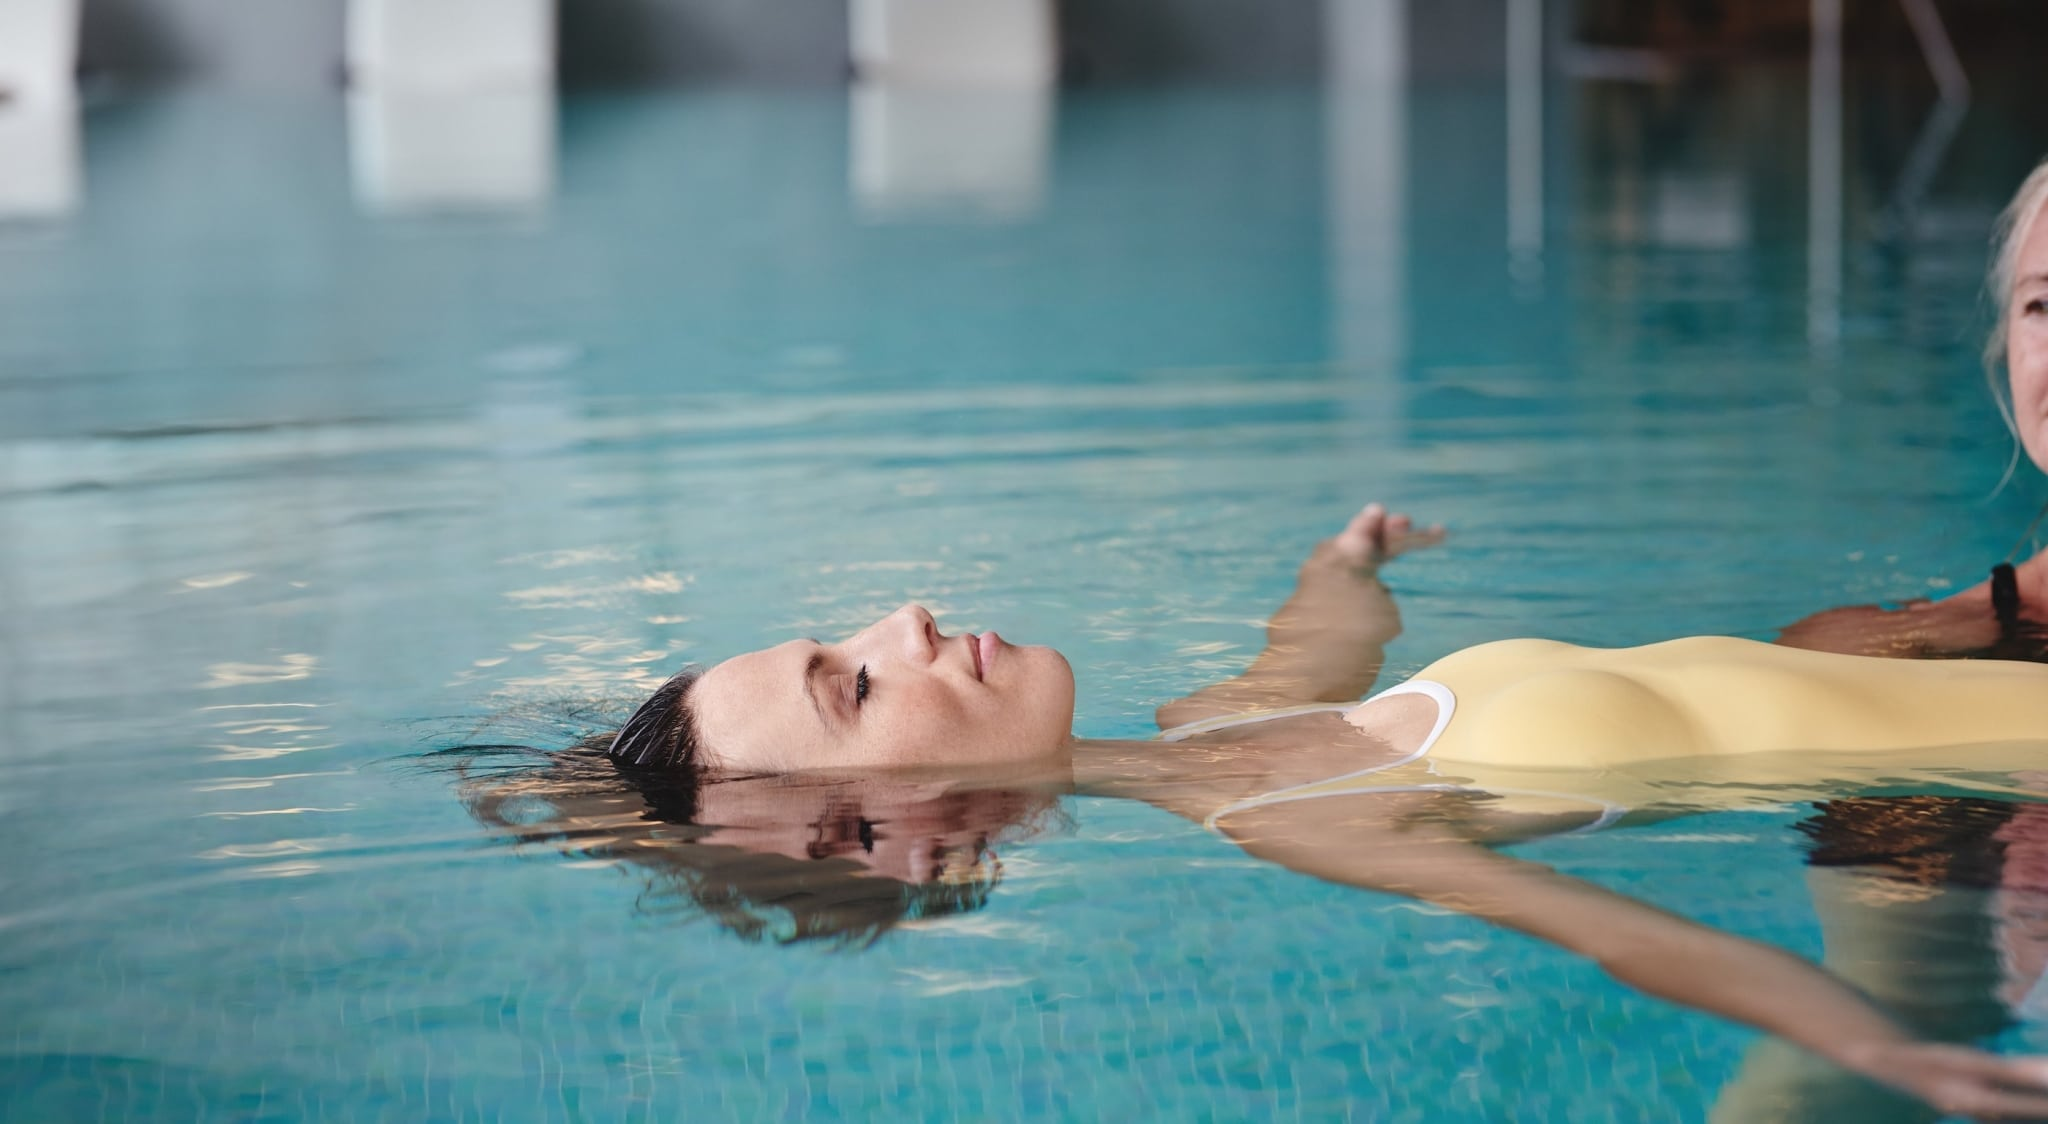 Female guest enjoying herself during WATSU (water shiatsu) session in pool at Medical Health Resort VIVAMAYR Altaussee